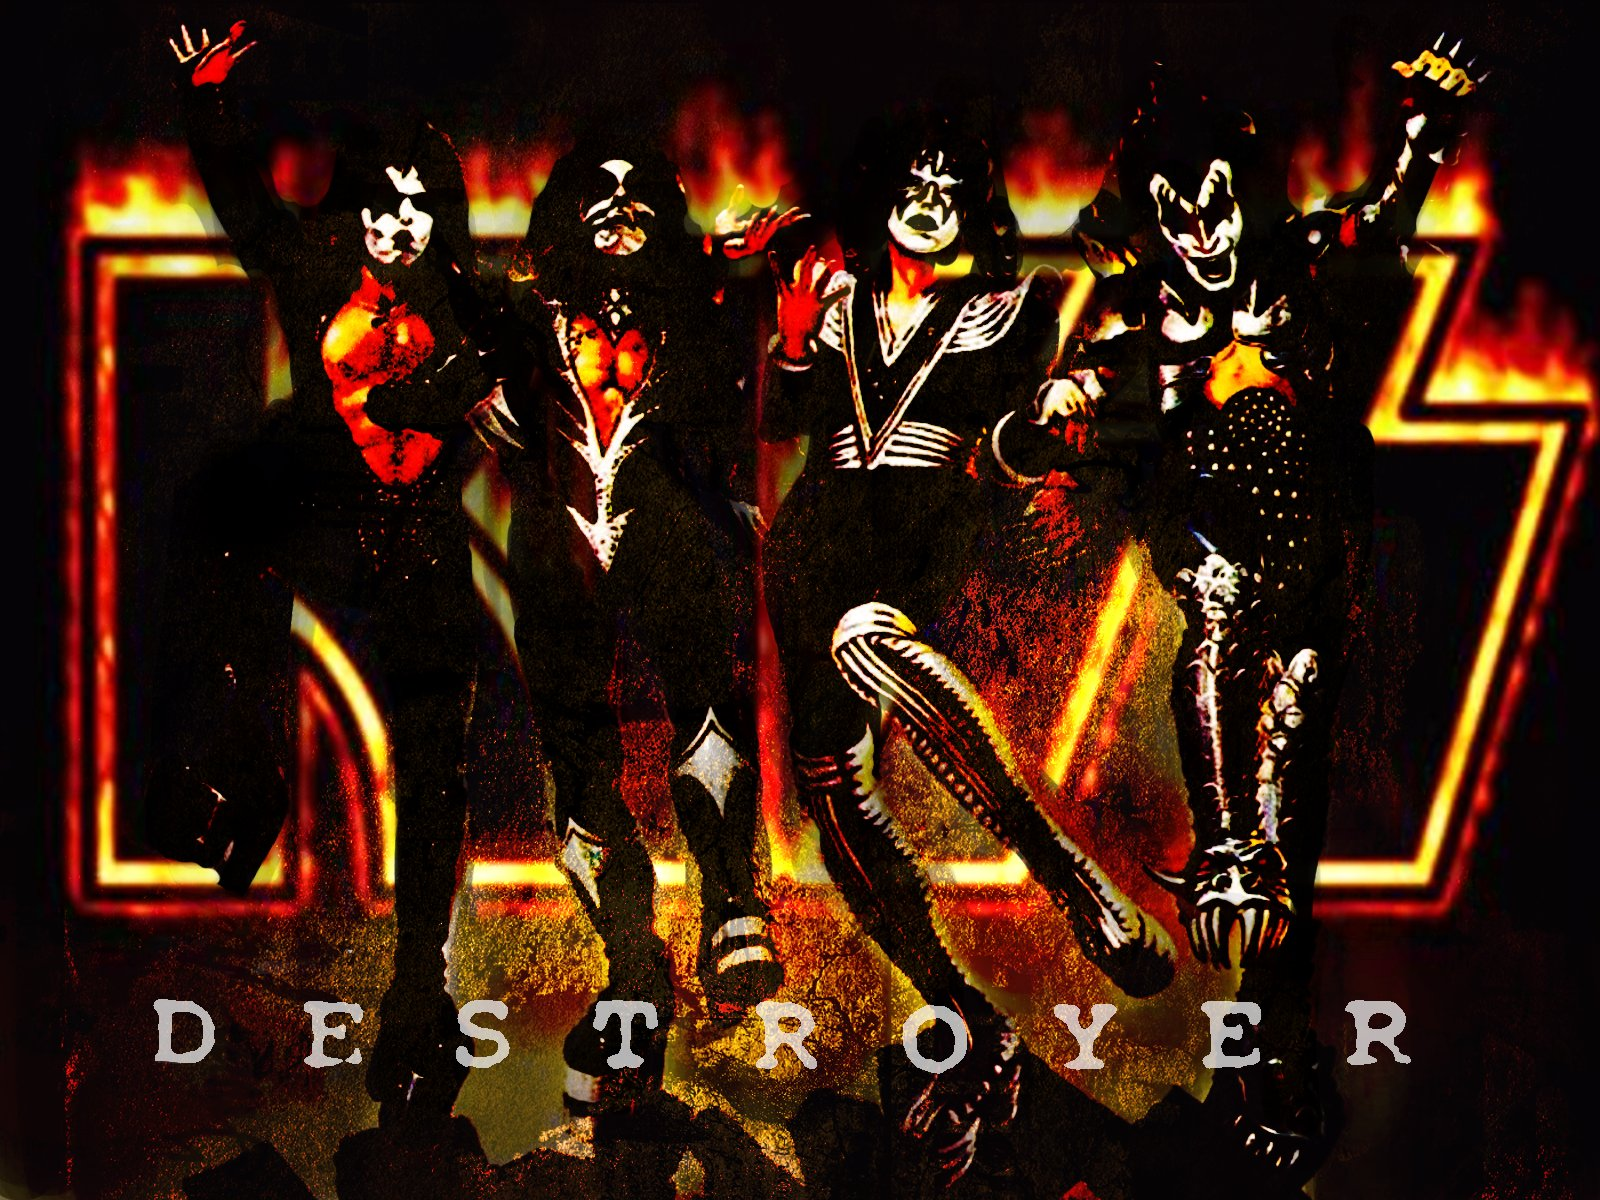 kiss images kiss destroyer hd wallpaper and background